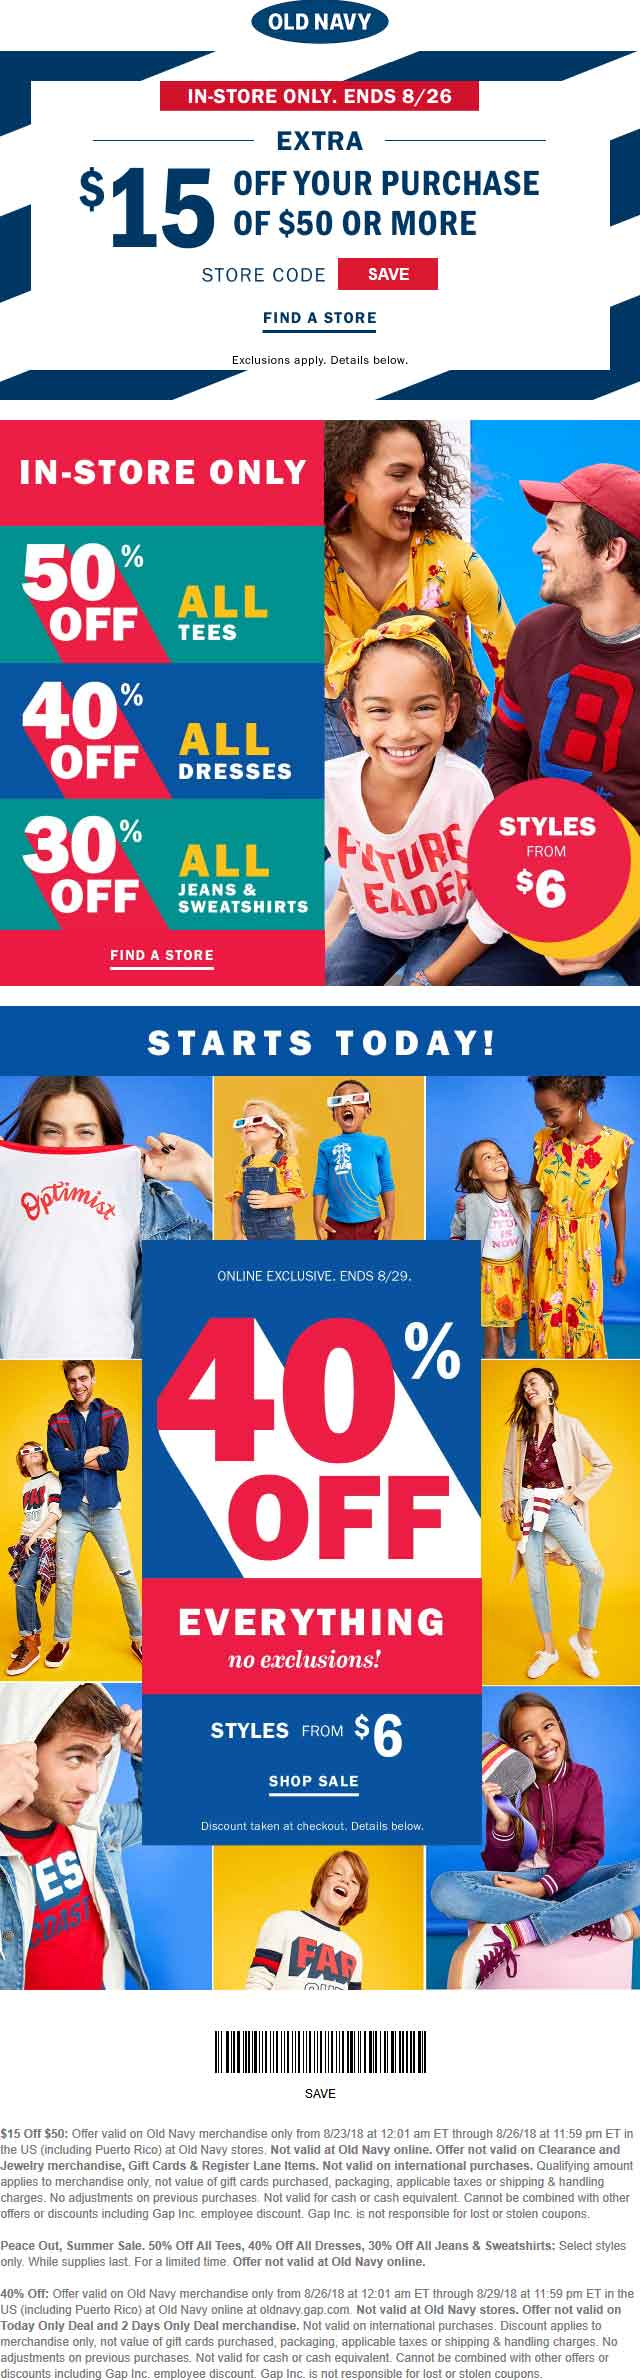 Old Navy Coupon November 2019 $15 off $50 at Old Navy, or 40% off everything online